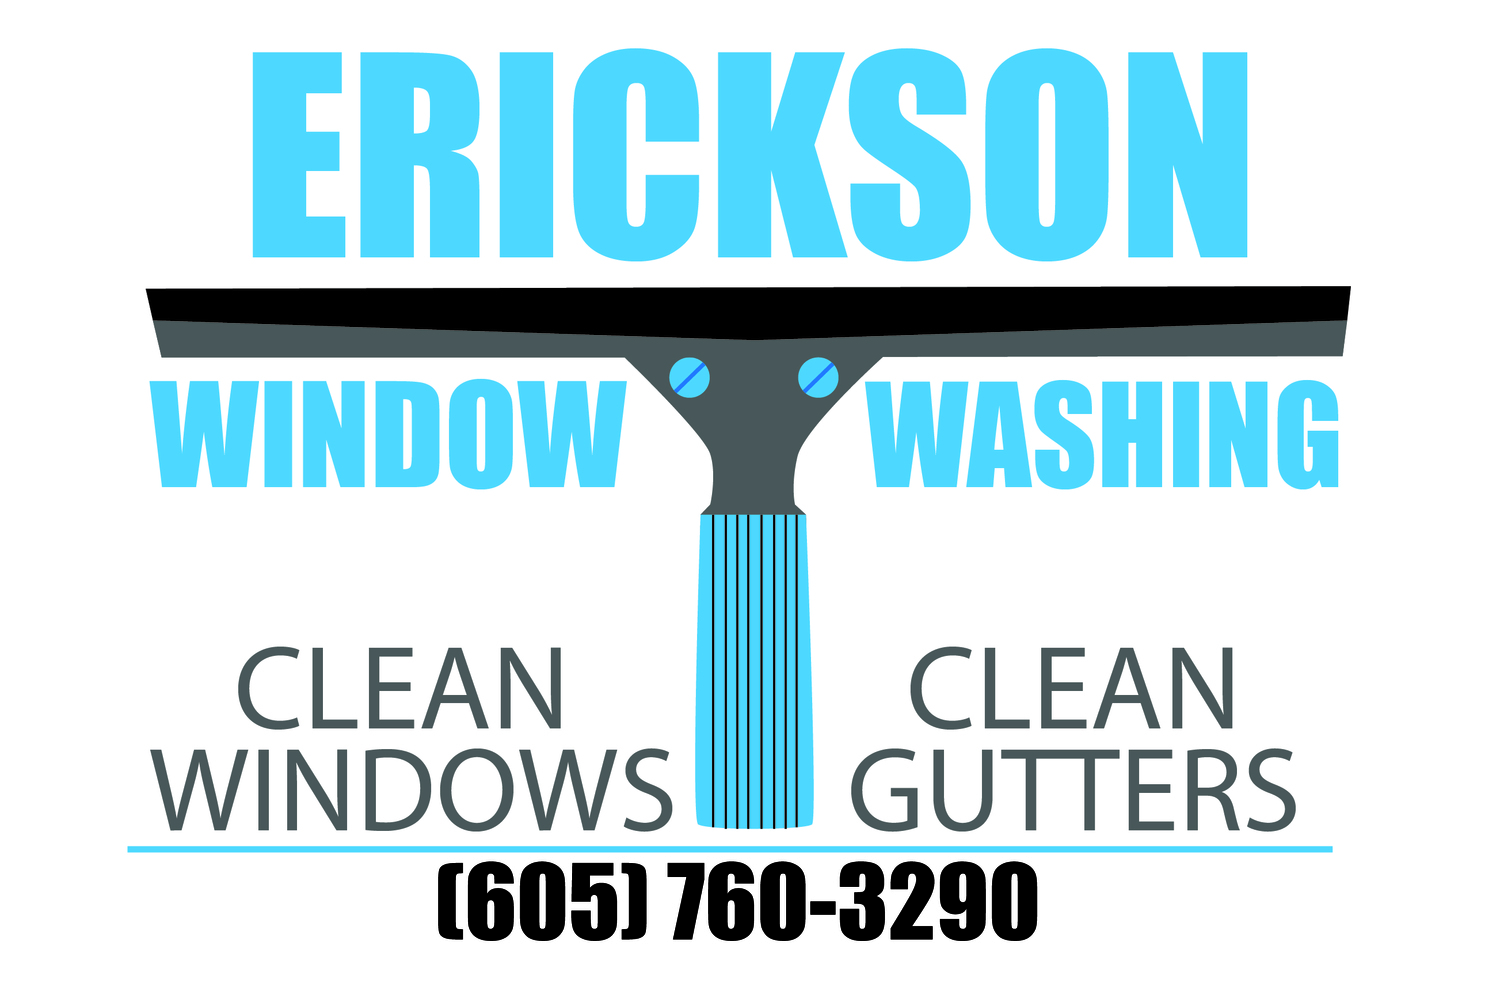 Erickson Window Washing